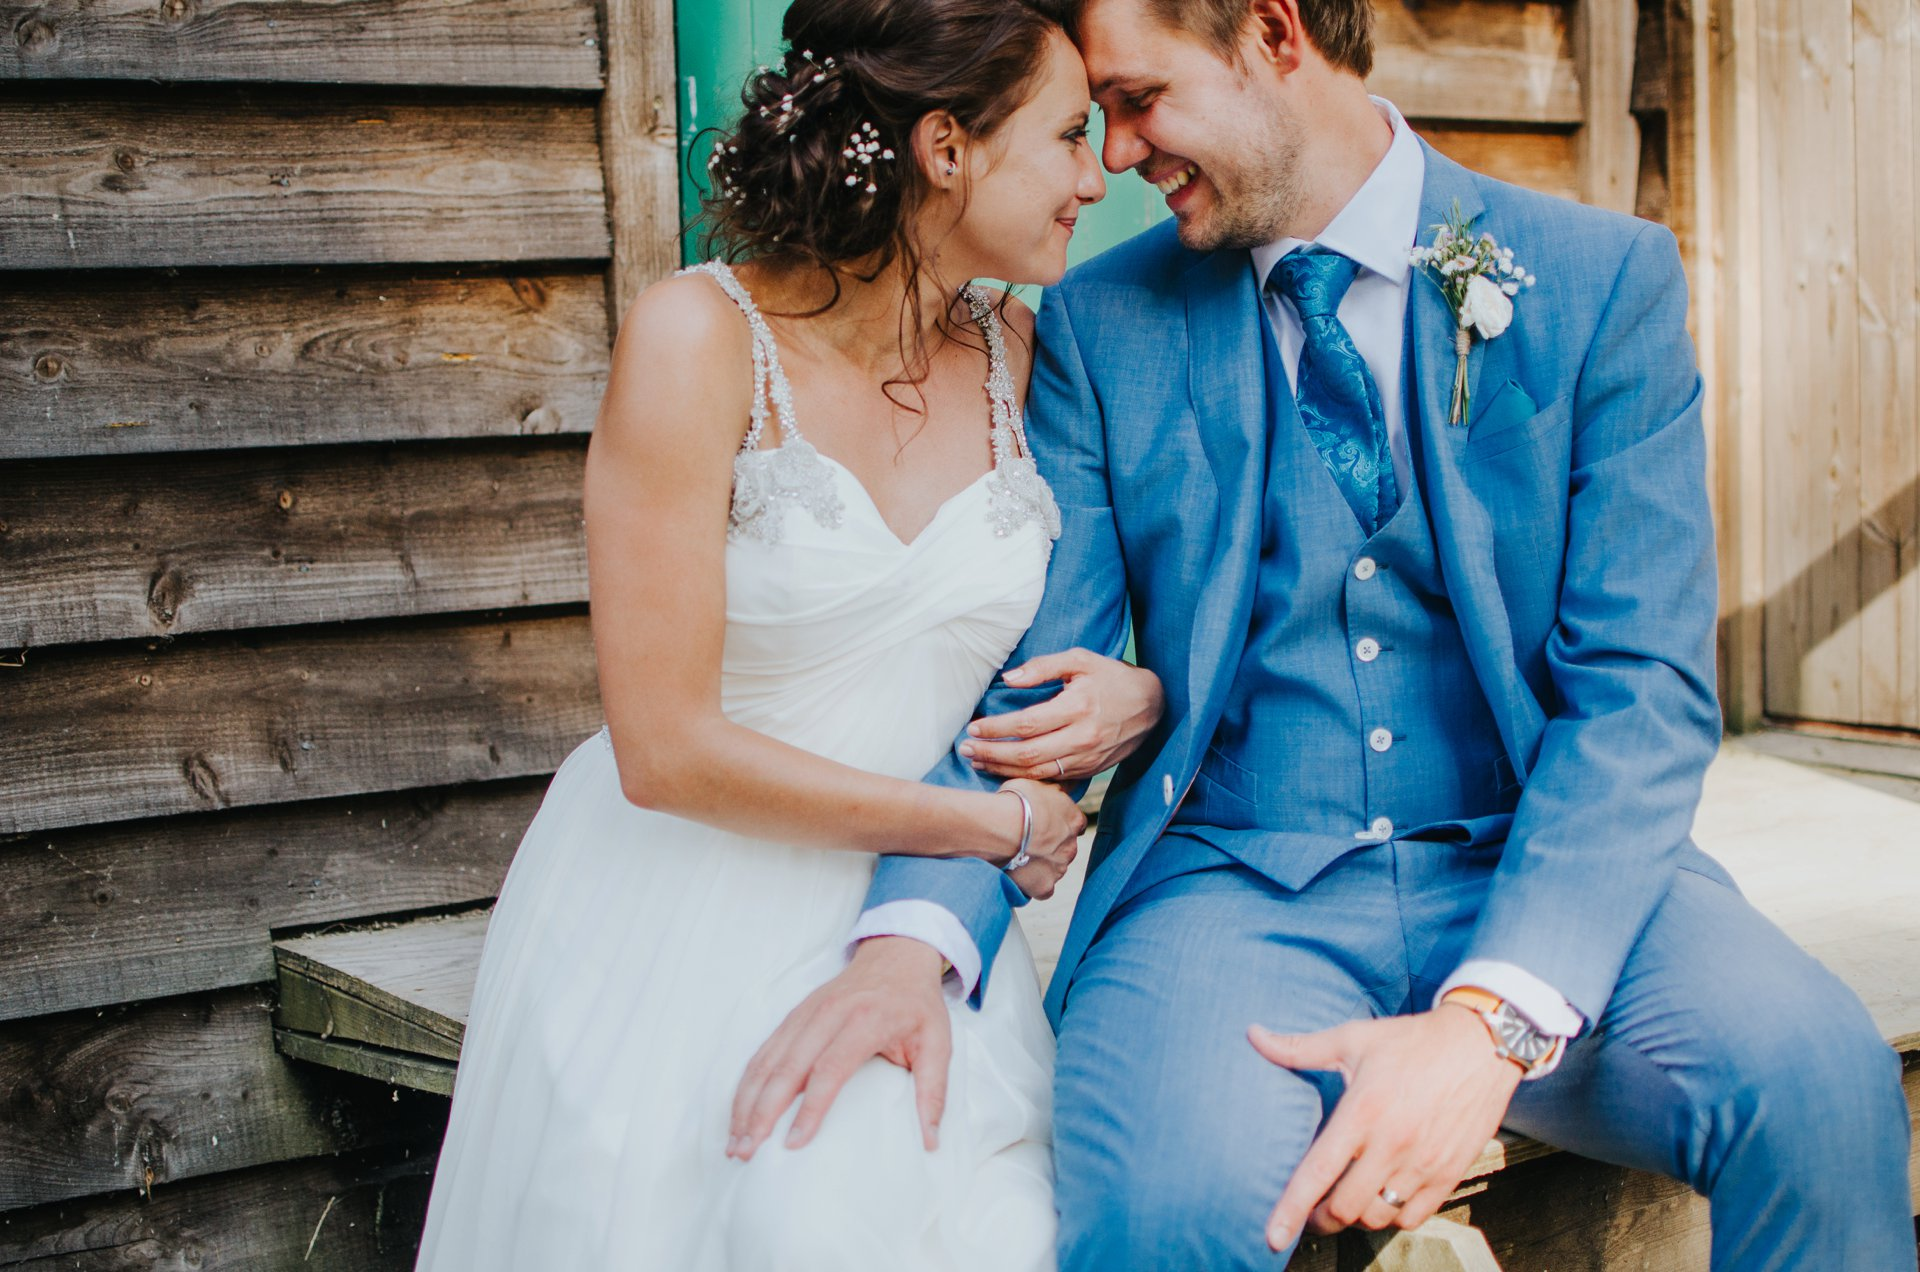 stylish bride and groom in blue suit sitting holding hands on wedding day